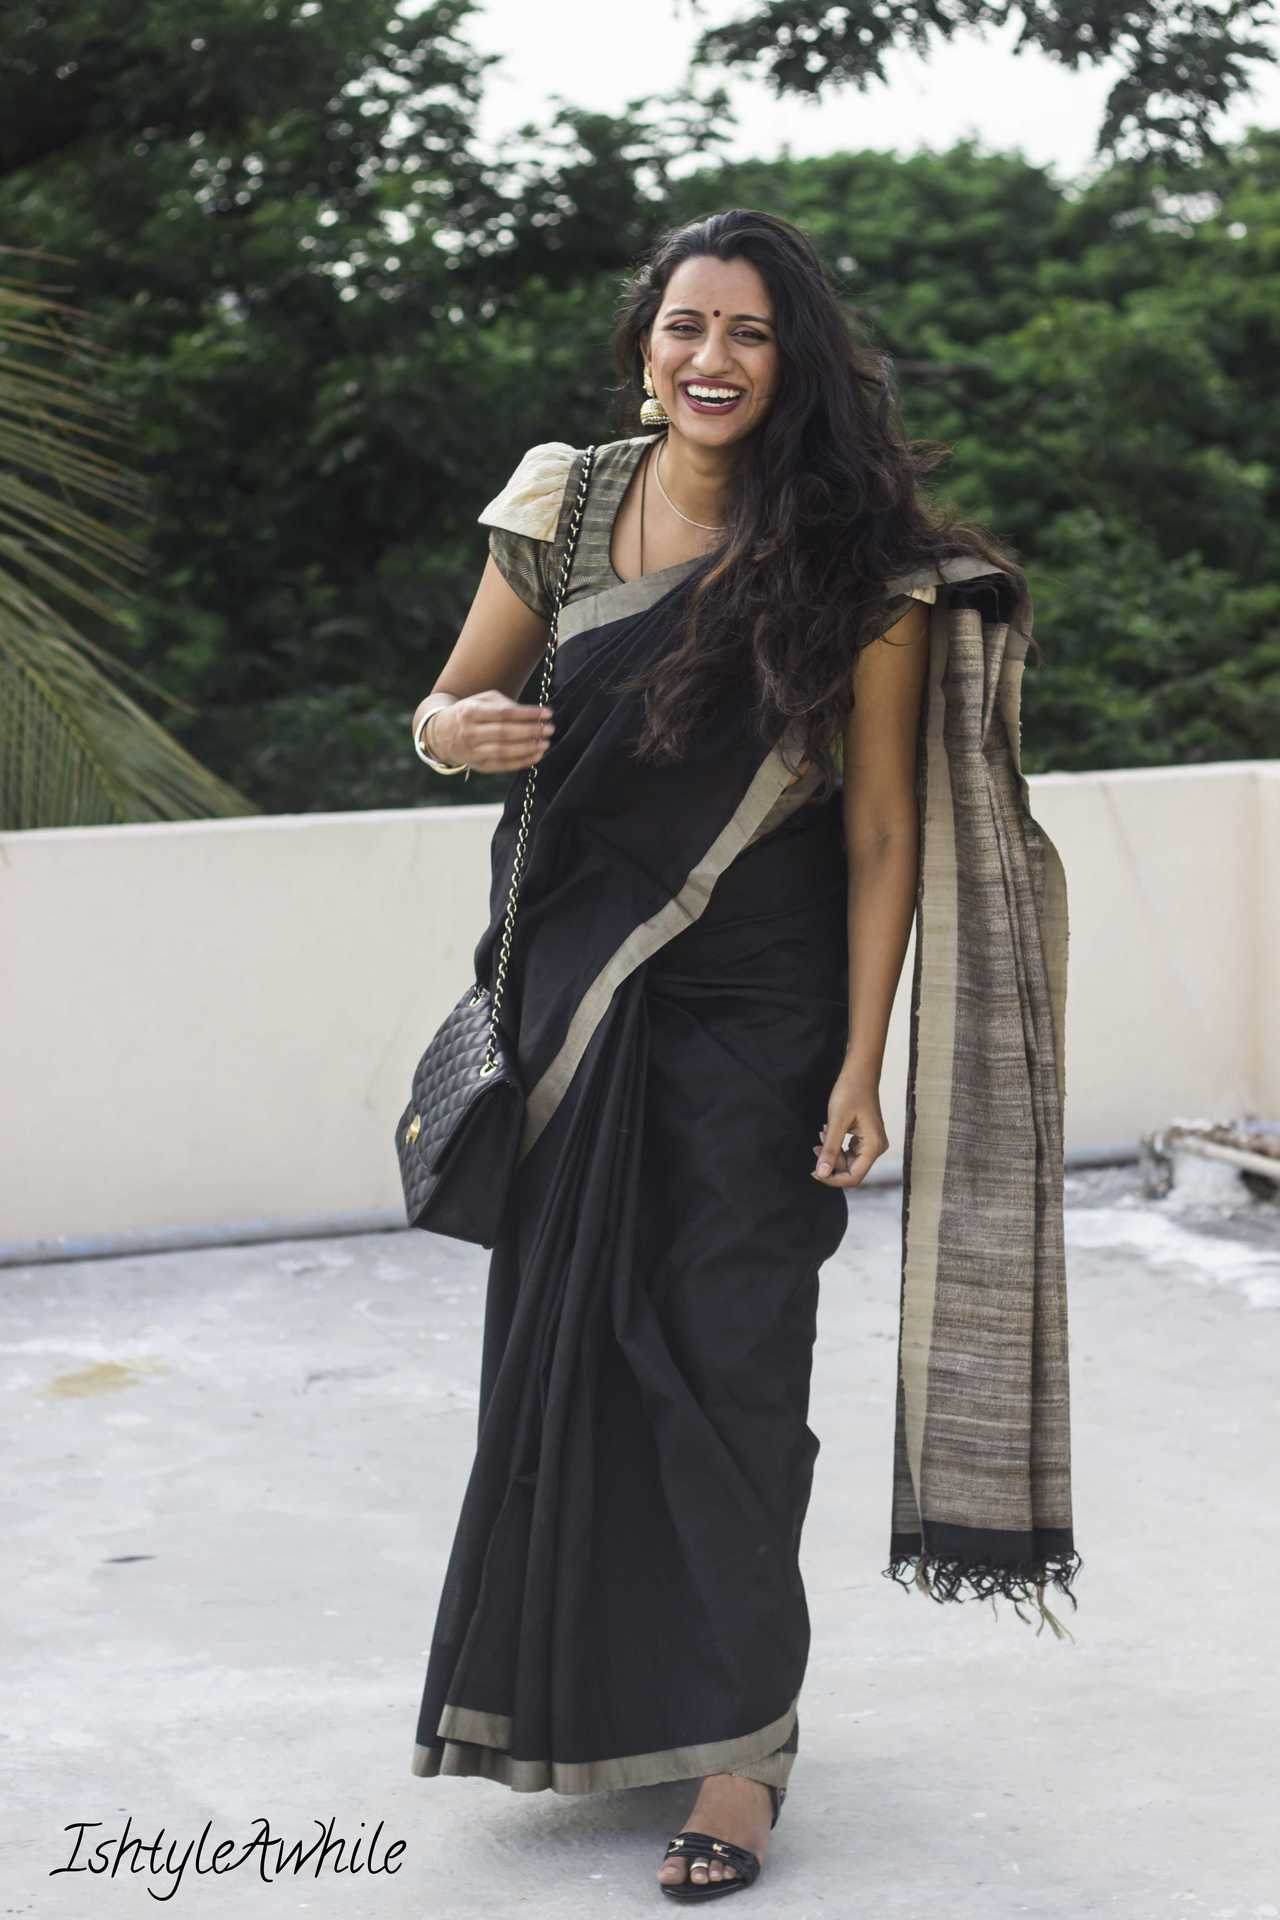 IshtyleAwhile - How to style a black saree